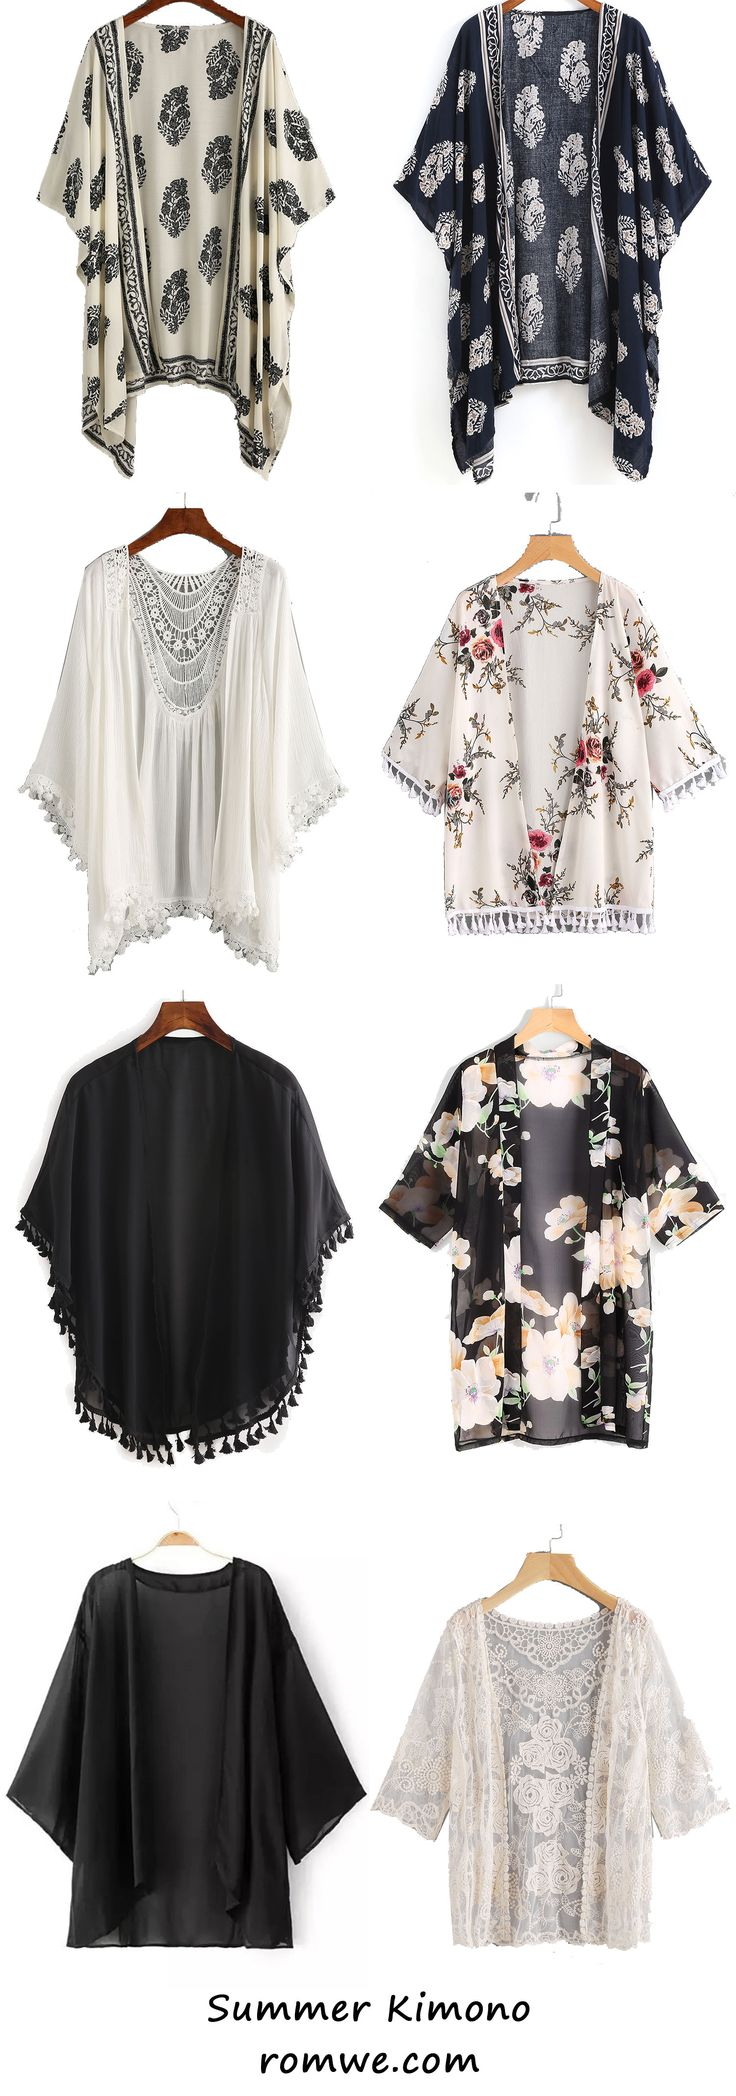 Love the idea of a kimono - never tried it, don't know how to wear it, but ready to try new things